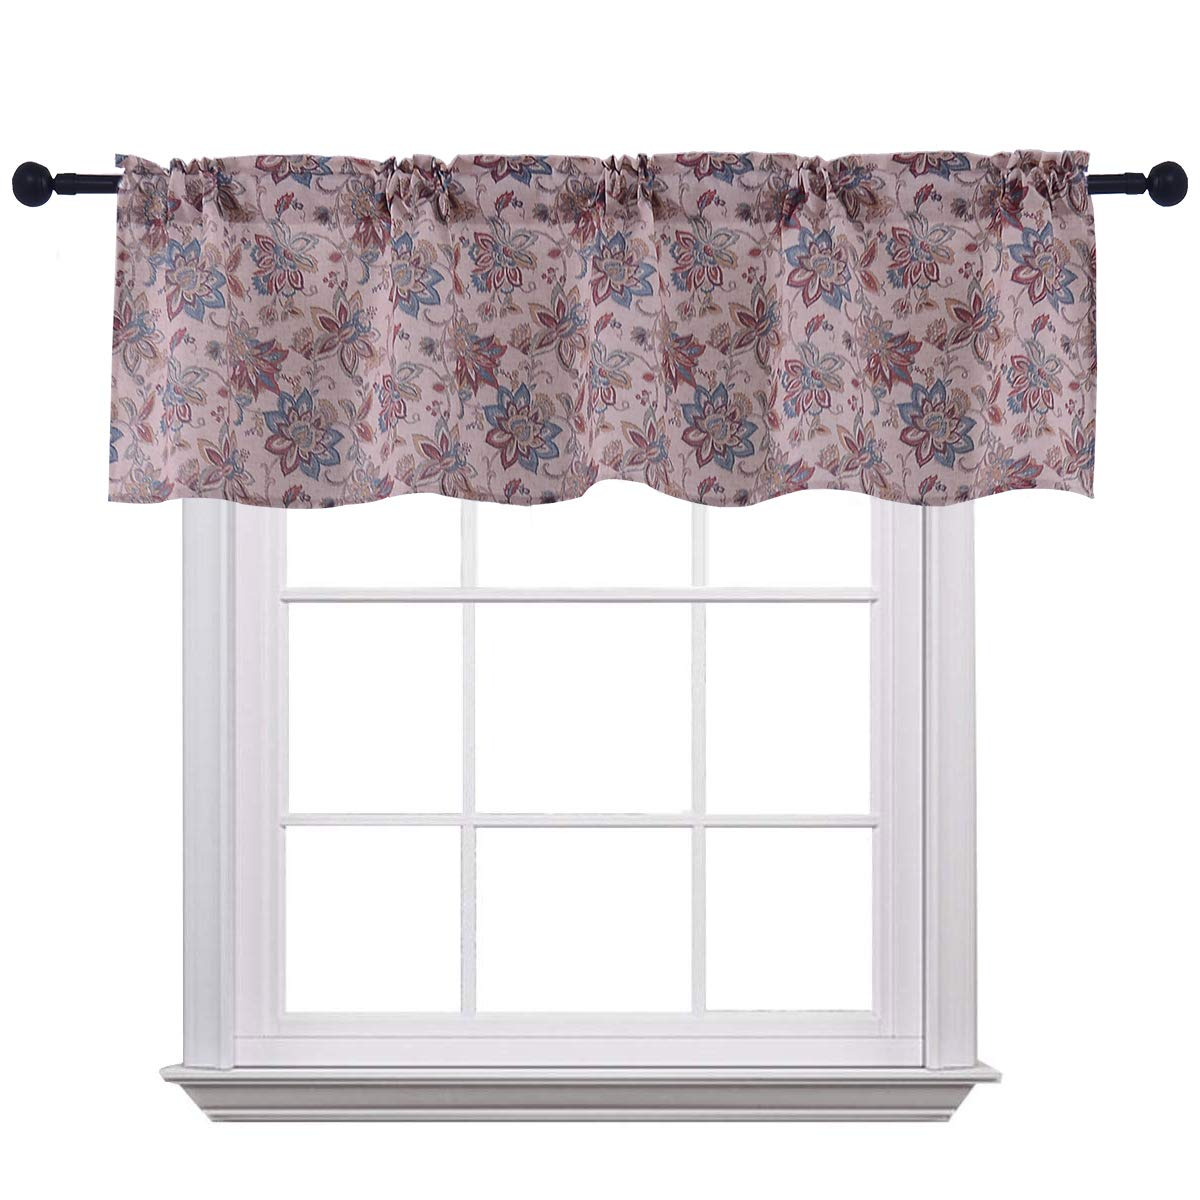 Curtain Valances for Windows Burlap Linen Floral Print Window Curtains for Kitchen Living Dining Room 58 x 15 inches Rod Pocket 1 Valance Red by Jinlei